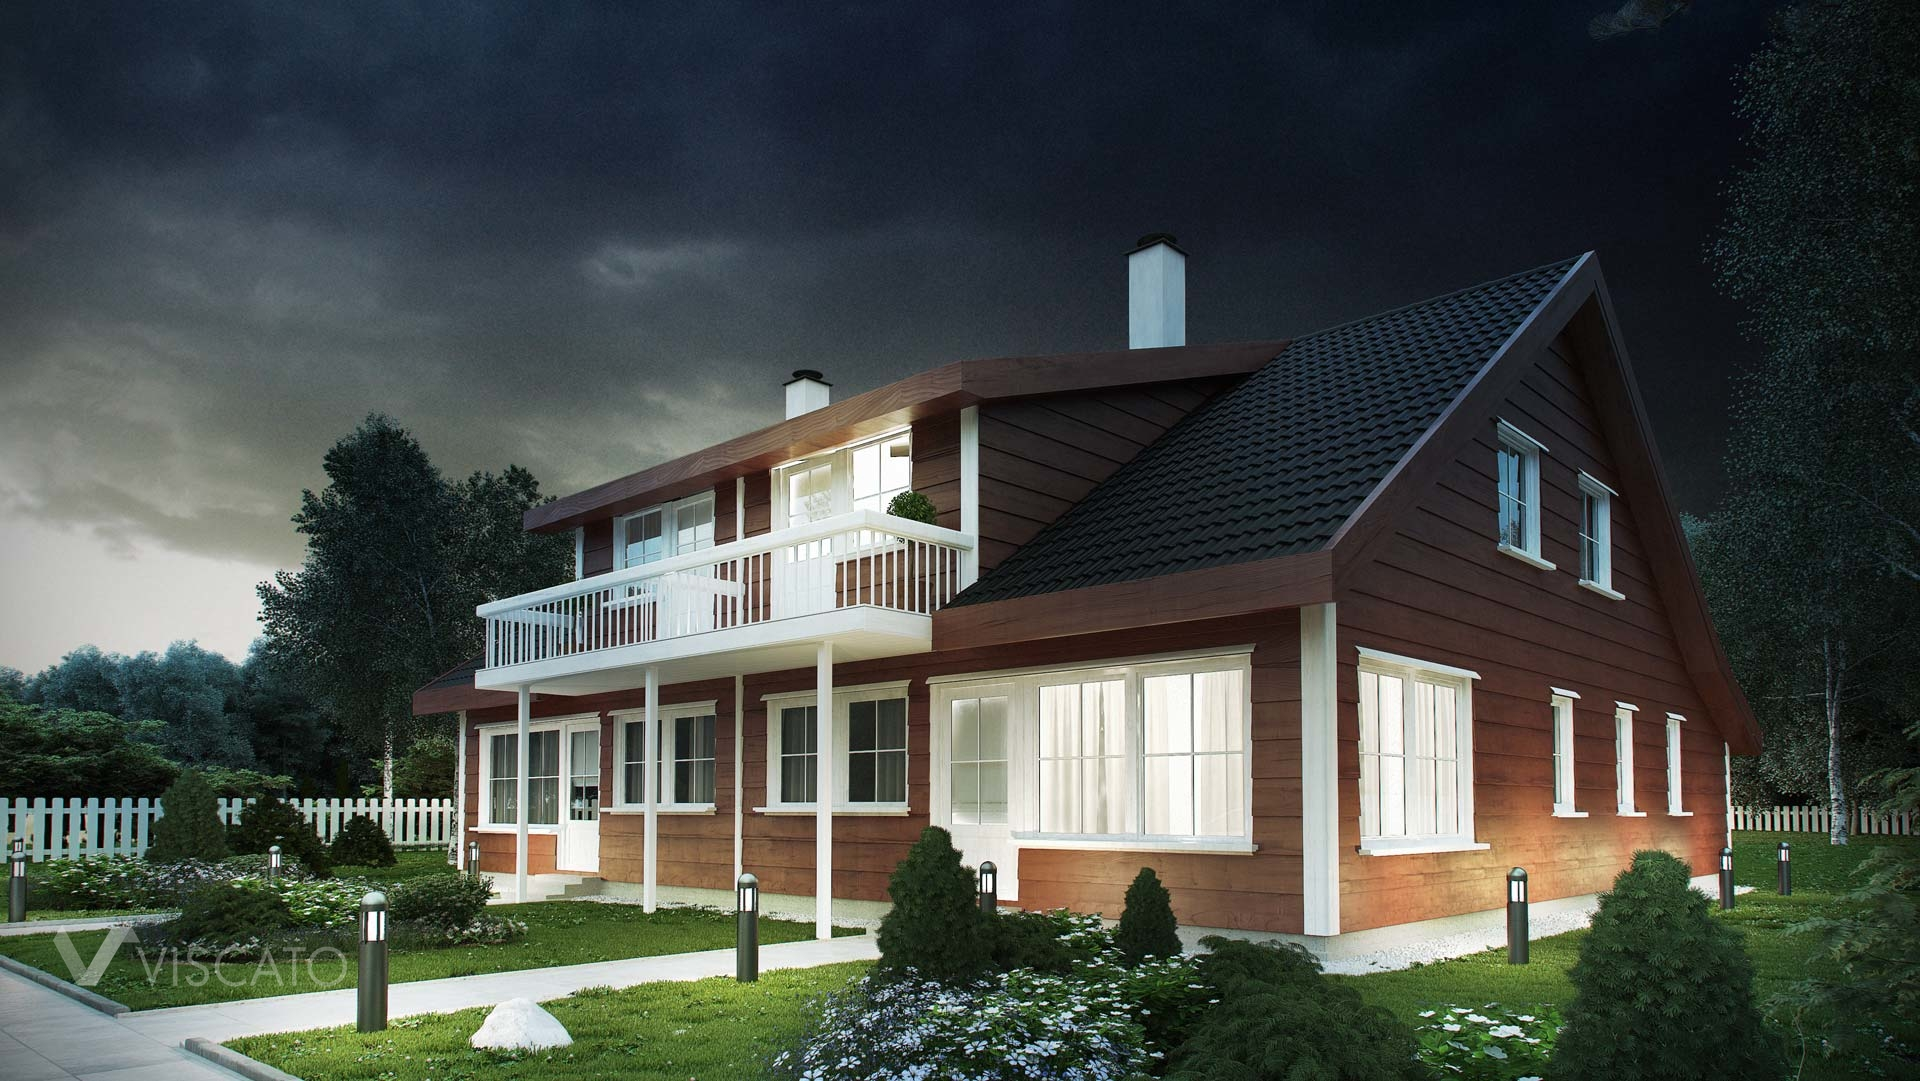 Tomannsbustad - exterior night rendering of typical norwegian house- view from side